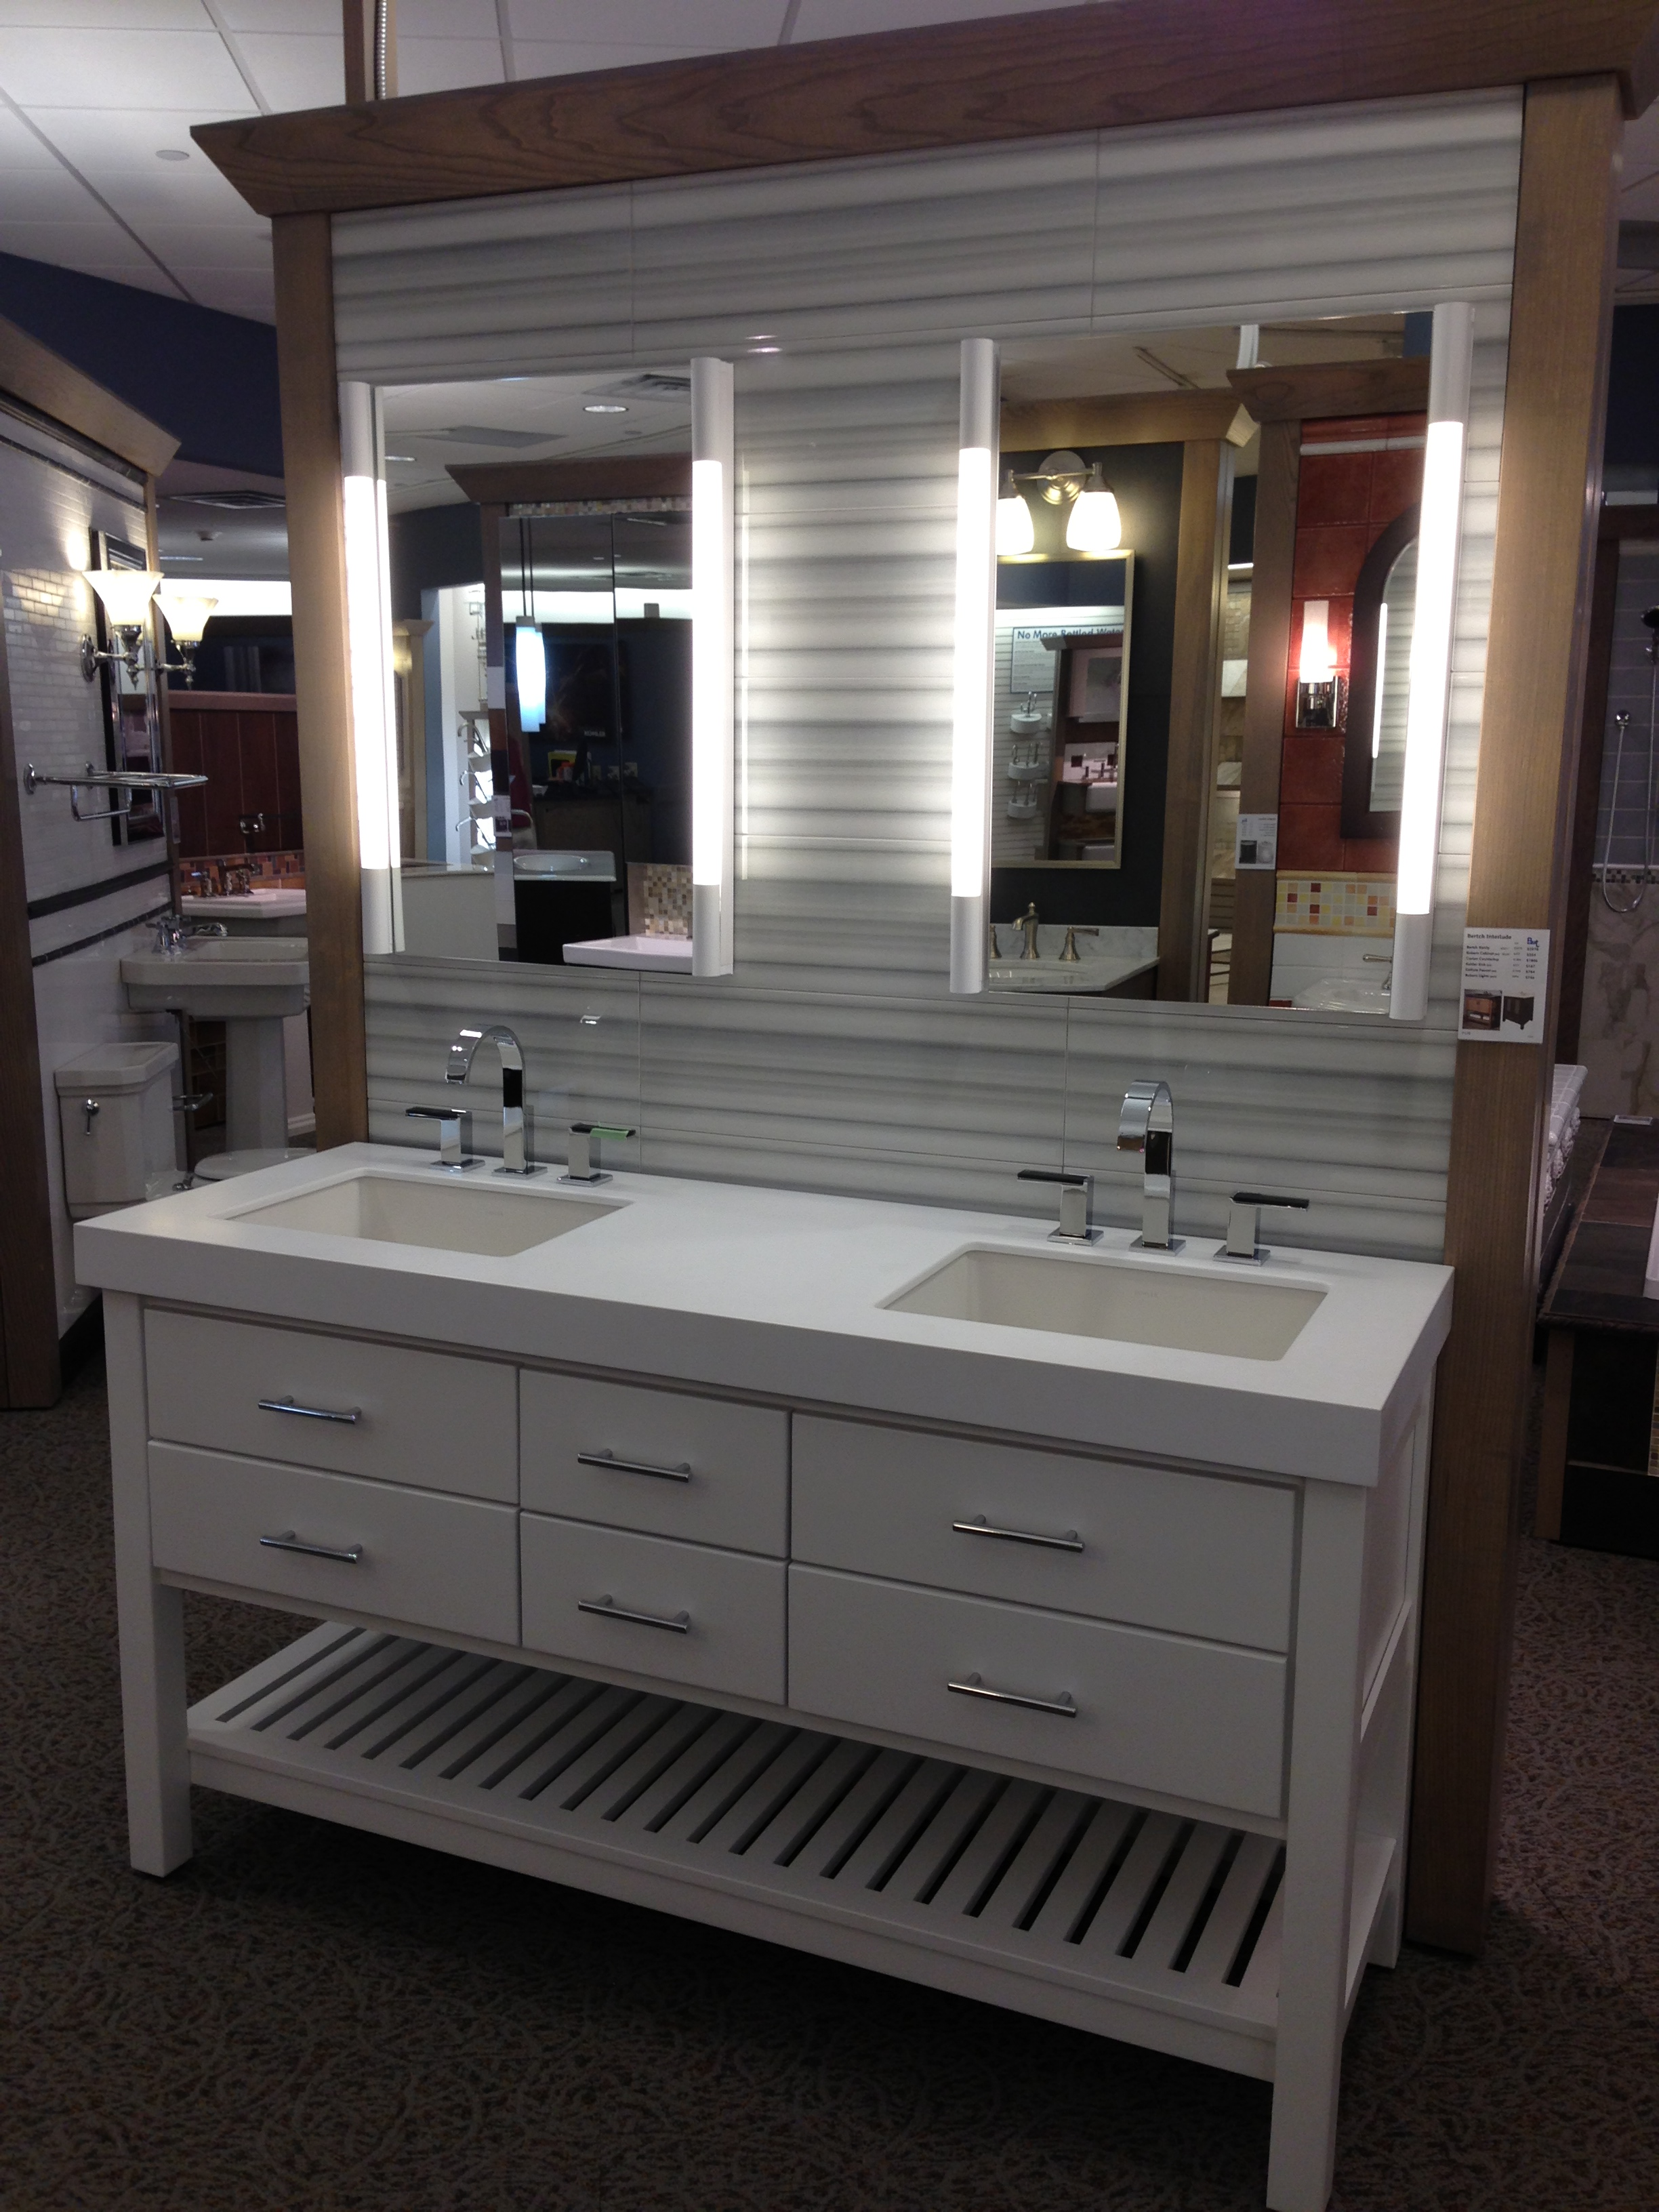 awesome laminate bathroom bertch cabinets in white with double sinks and faucets plus hutch with double mirrors for bathroom furniture ideas